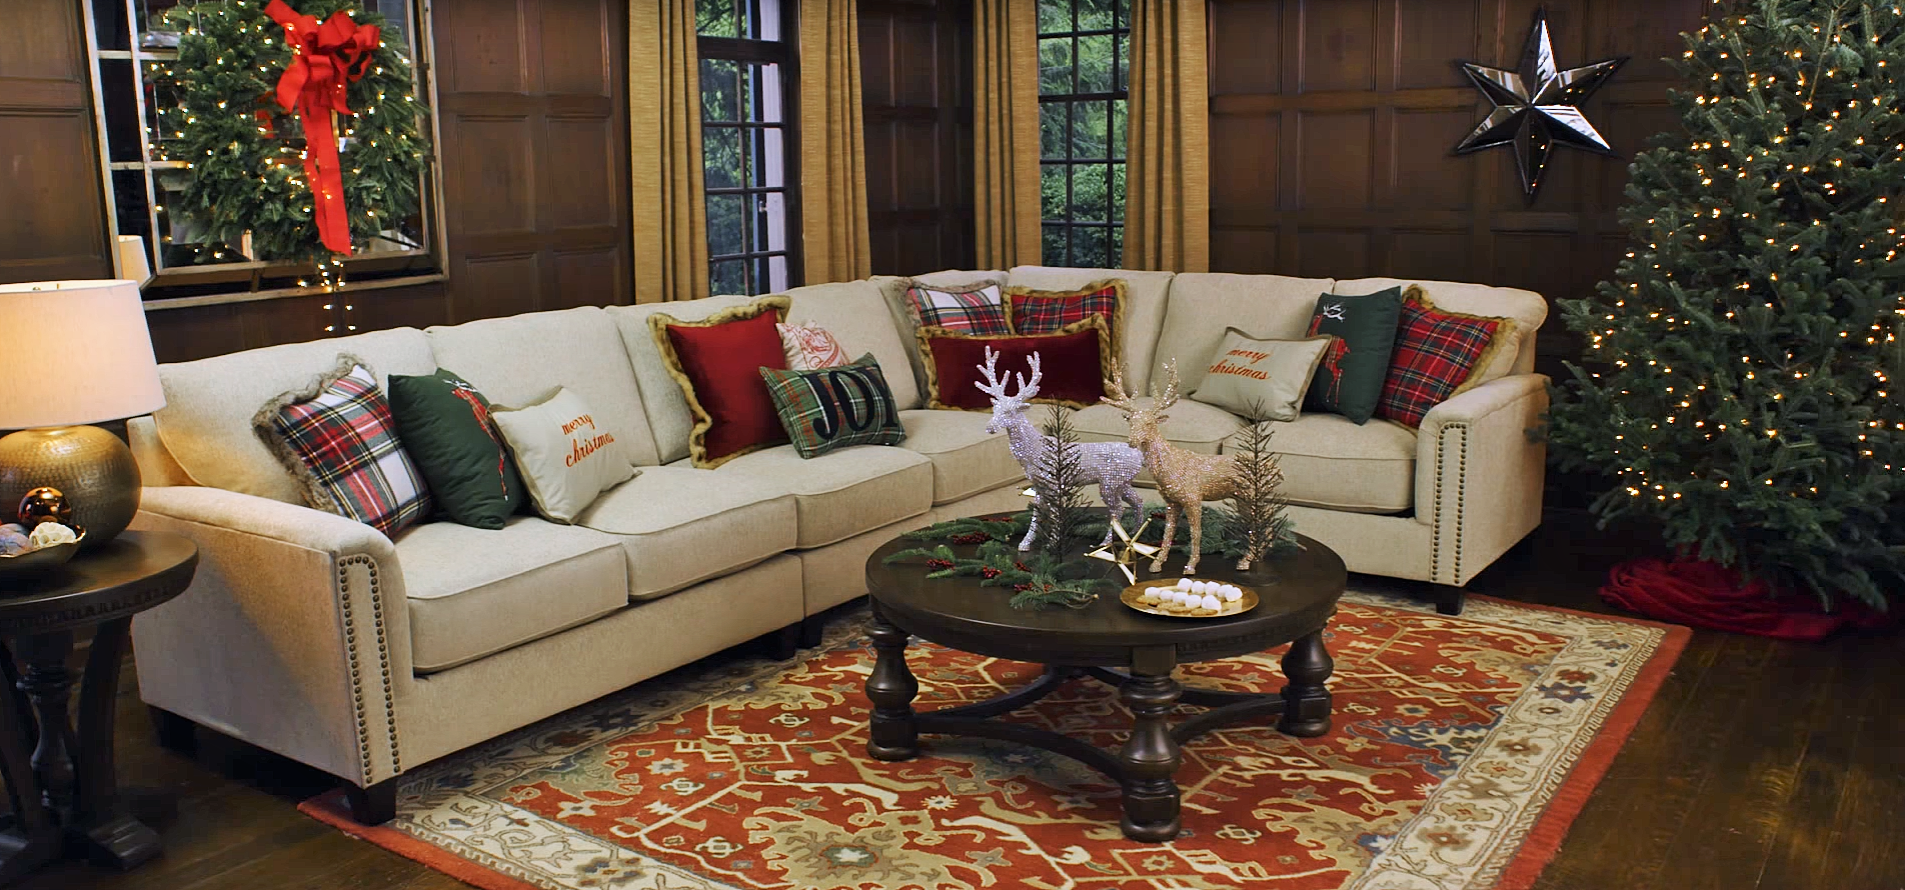 Holiday Living Room Refresh Ashley Furniture Homestore Blog